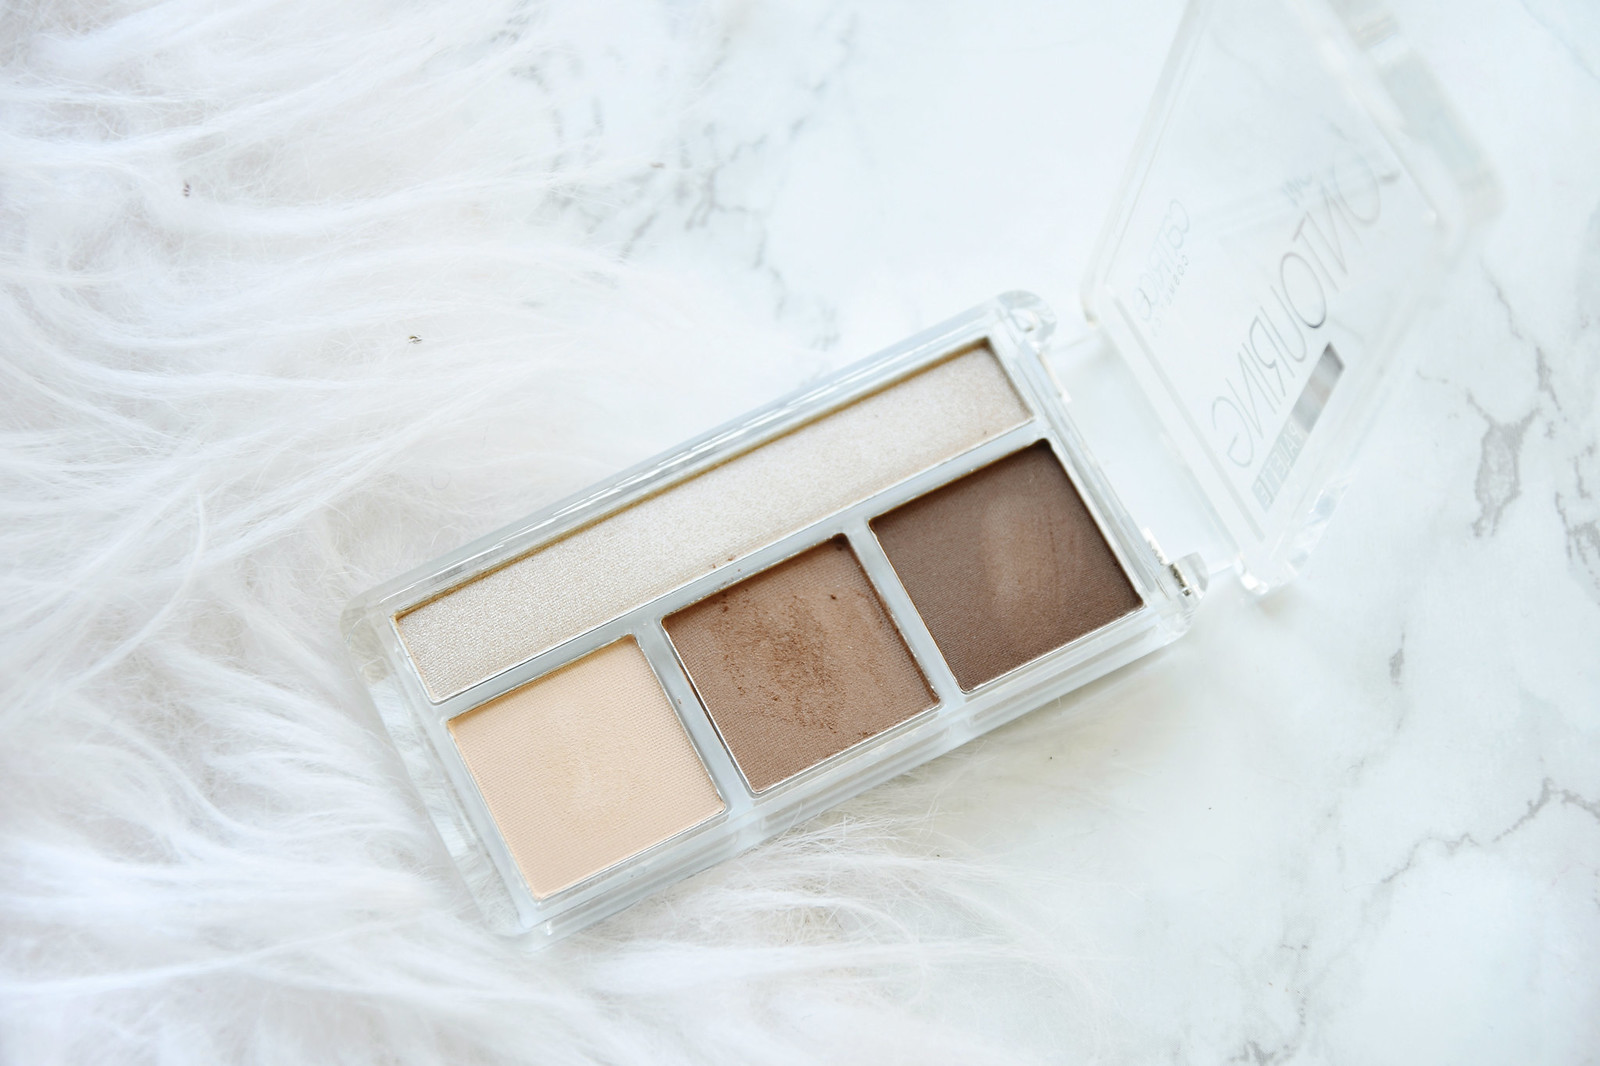 Eye & Brow Contouring Palette review